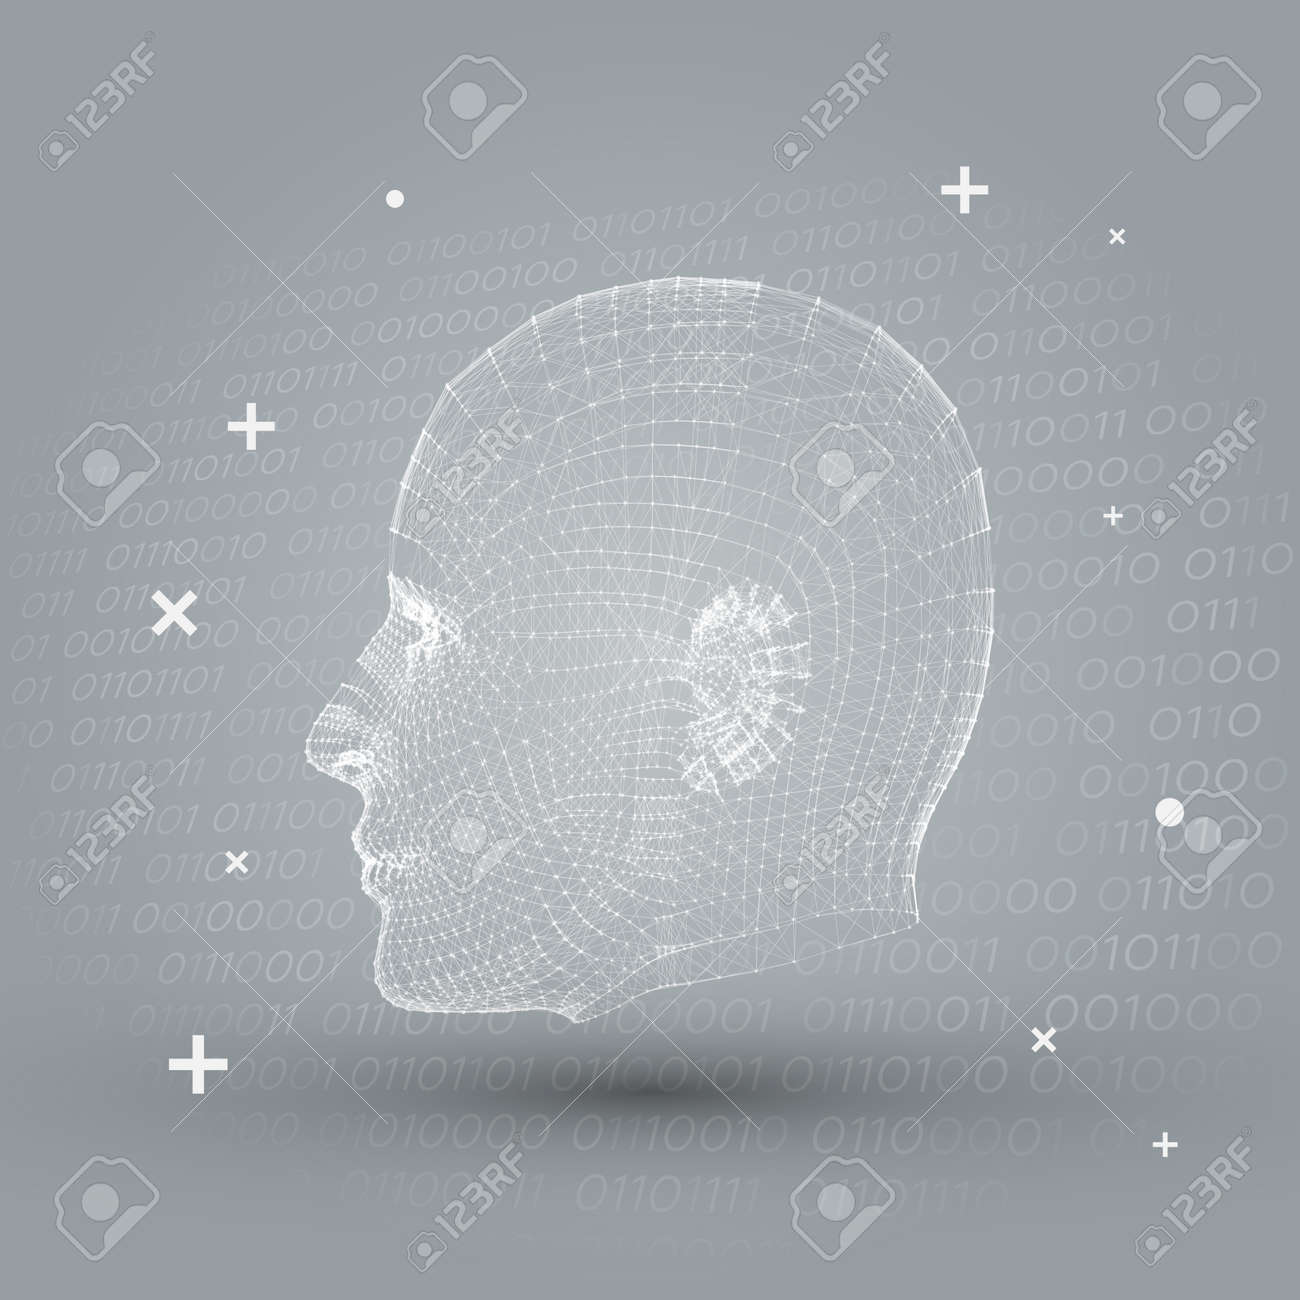 Artificial intelligence with white cyborg mesh face vector artificial intelligence with white cyborg mesh face vector illustration background grey futuristic business presentation template toneelgroepblik Gallery